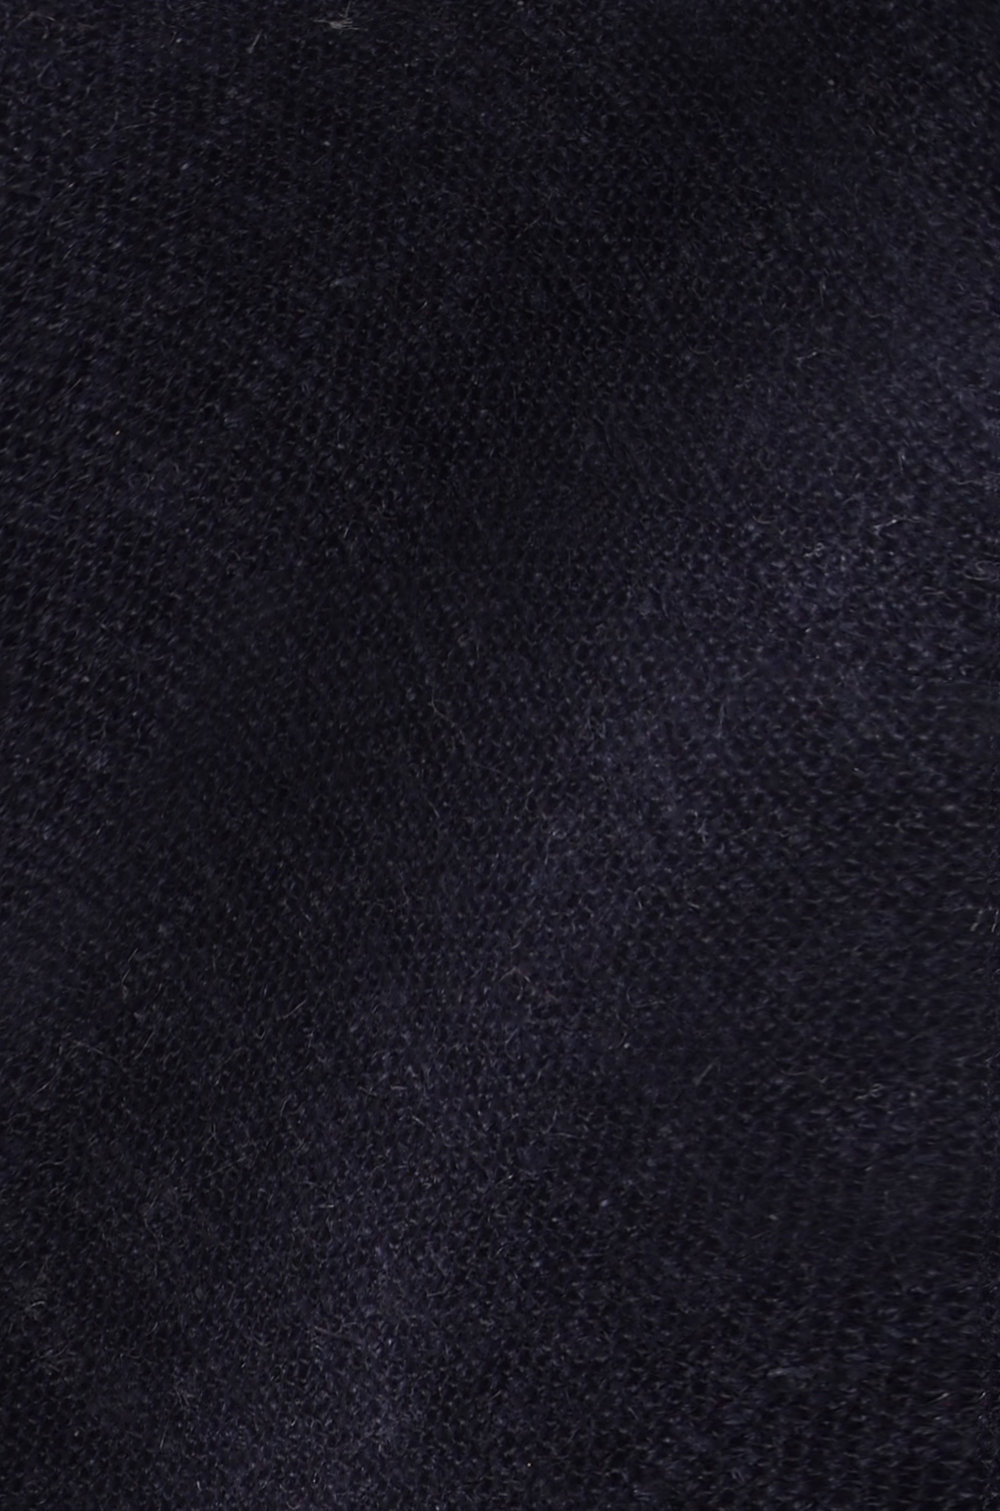 FABRIC-4_darkblue.jpg